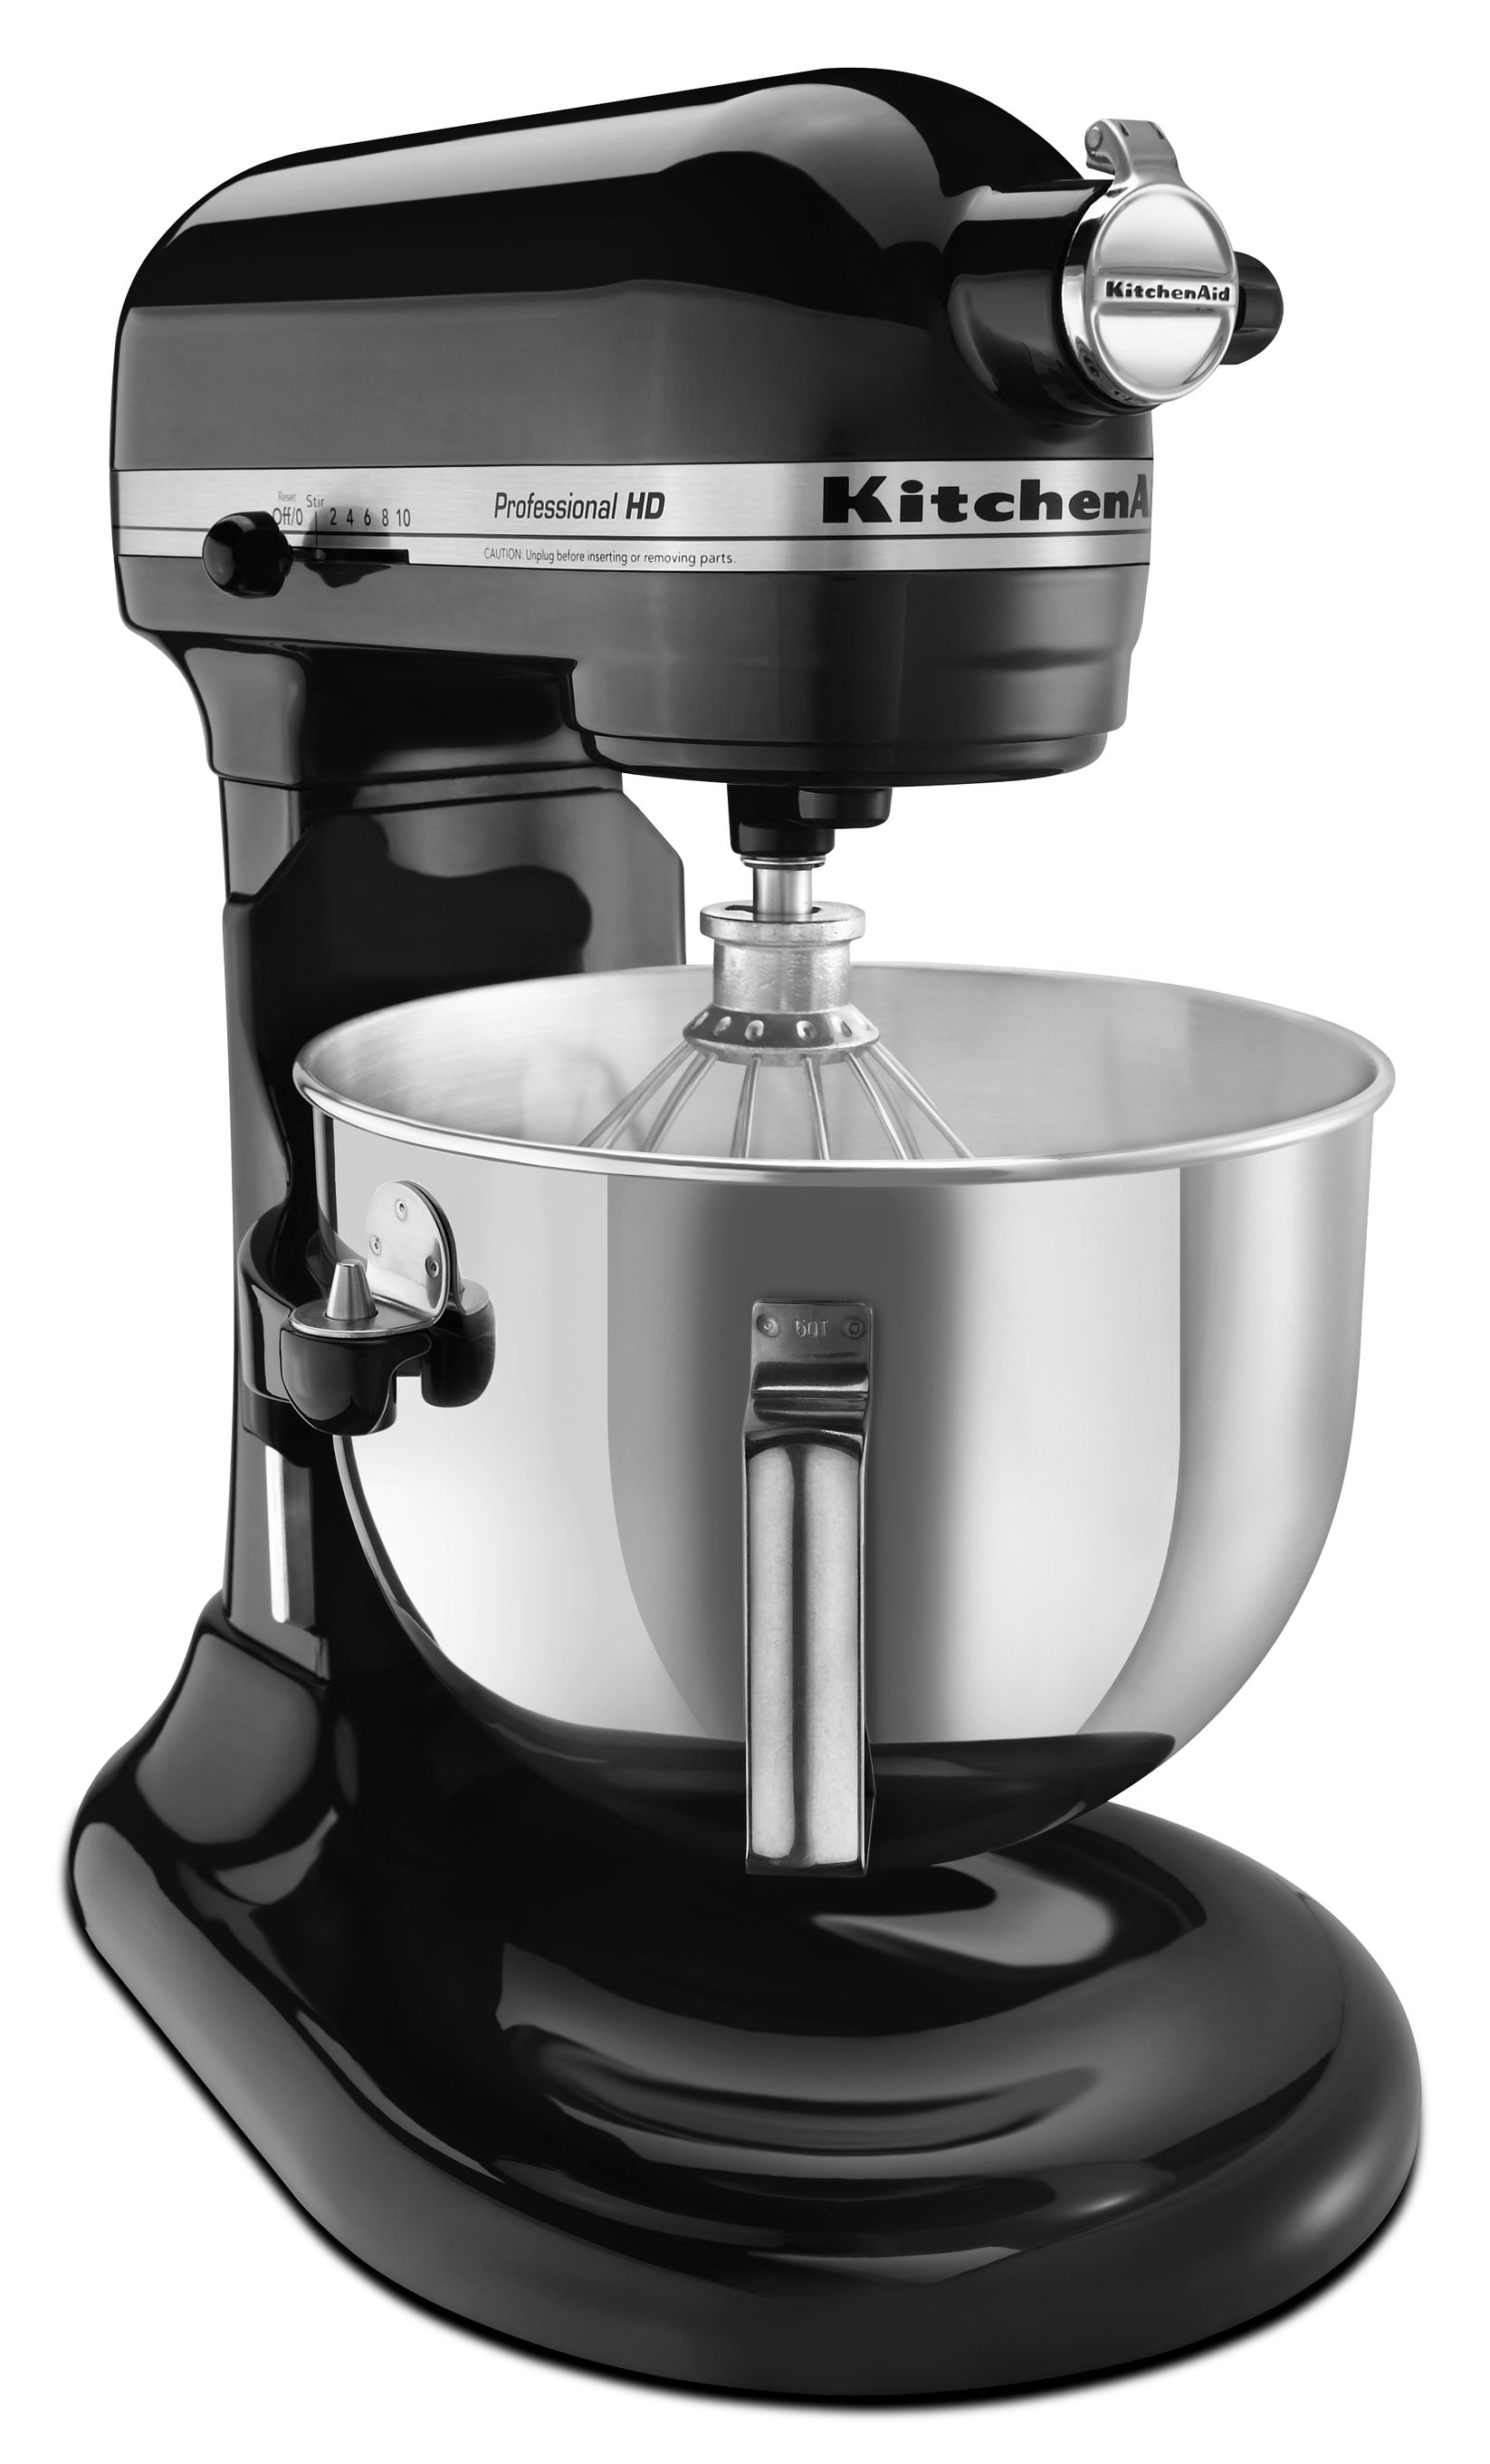 KitchenAid-Refurbished-Professional-HD-Series-Bowl-Lift-Stand-Mixer-RKG25H0X thumbnail 15